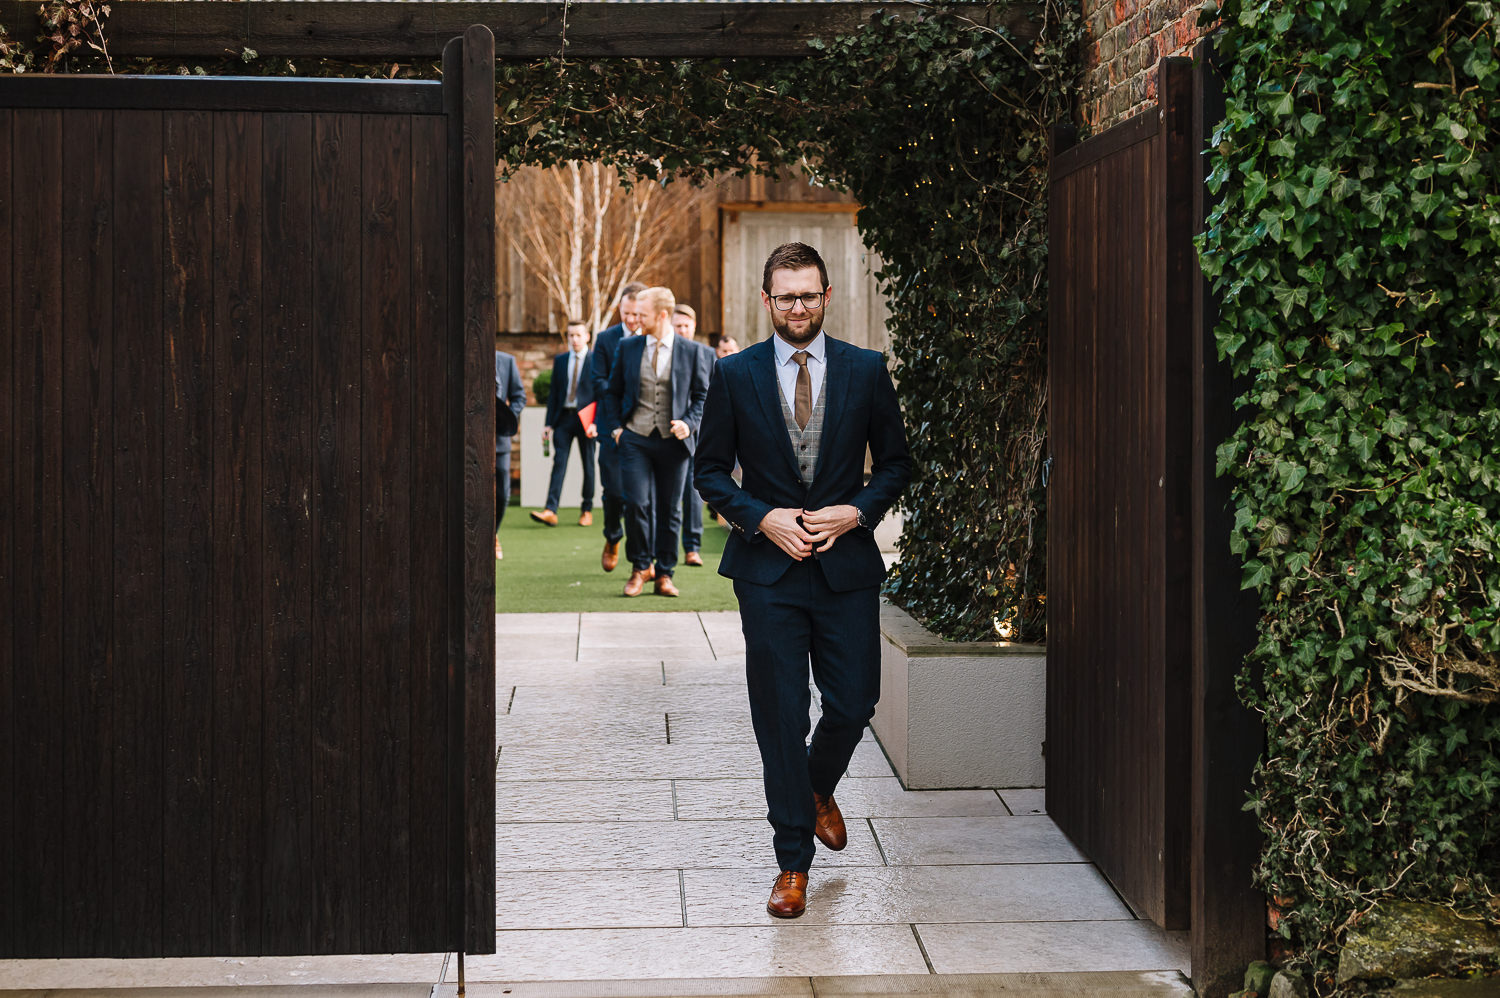 Groom arriving at the normans wedding venue